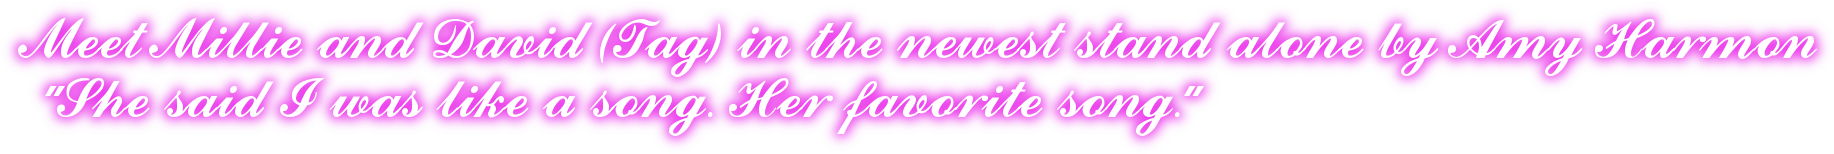 Meet Millie and David (Tag) in the newest stand alone by Amy Harmon